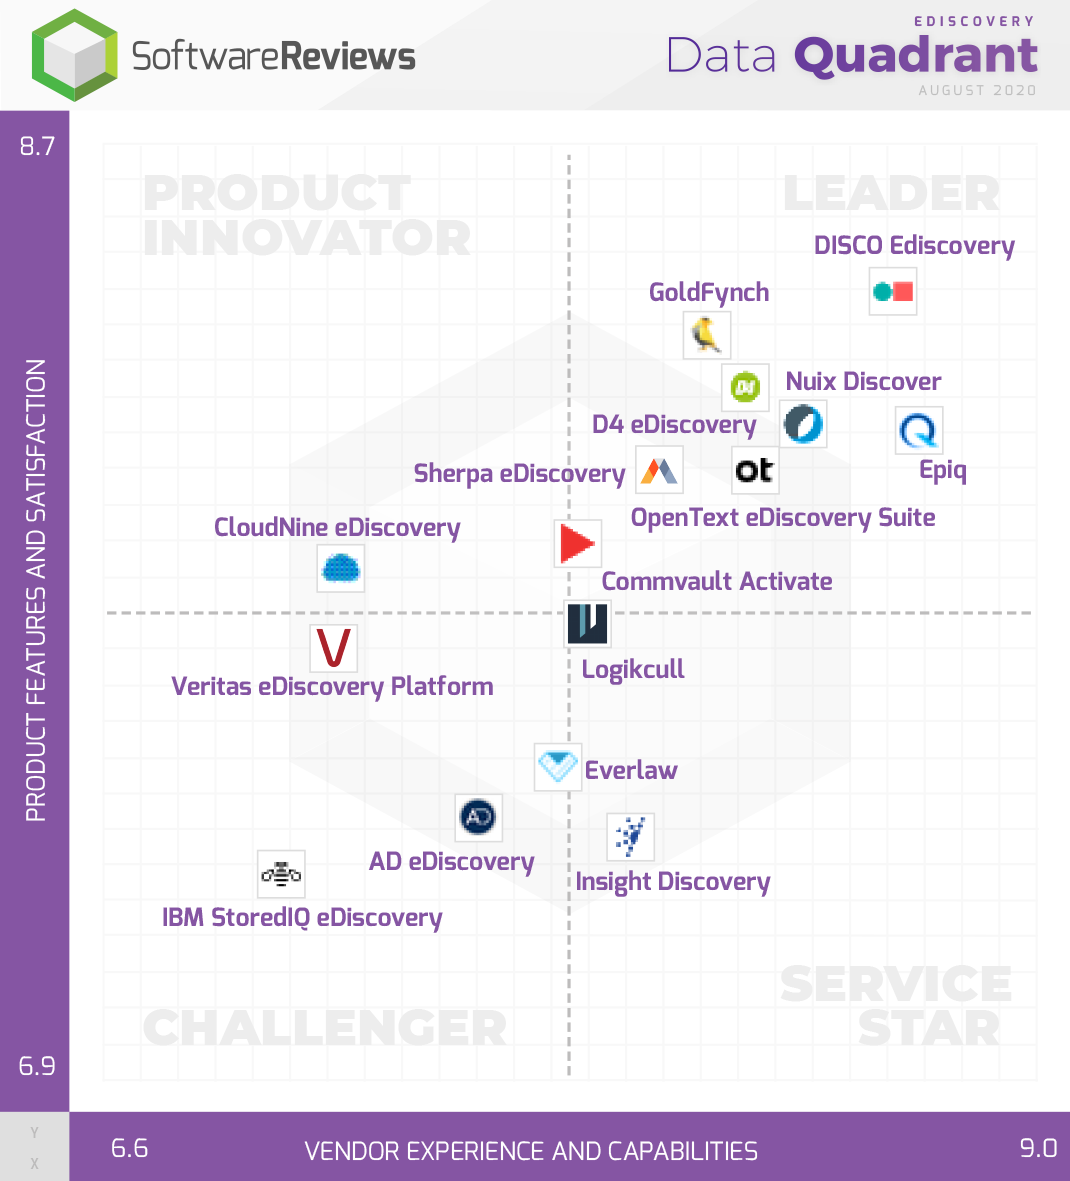 eDiscovery Data Quadrant